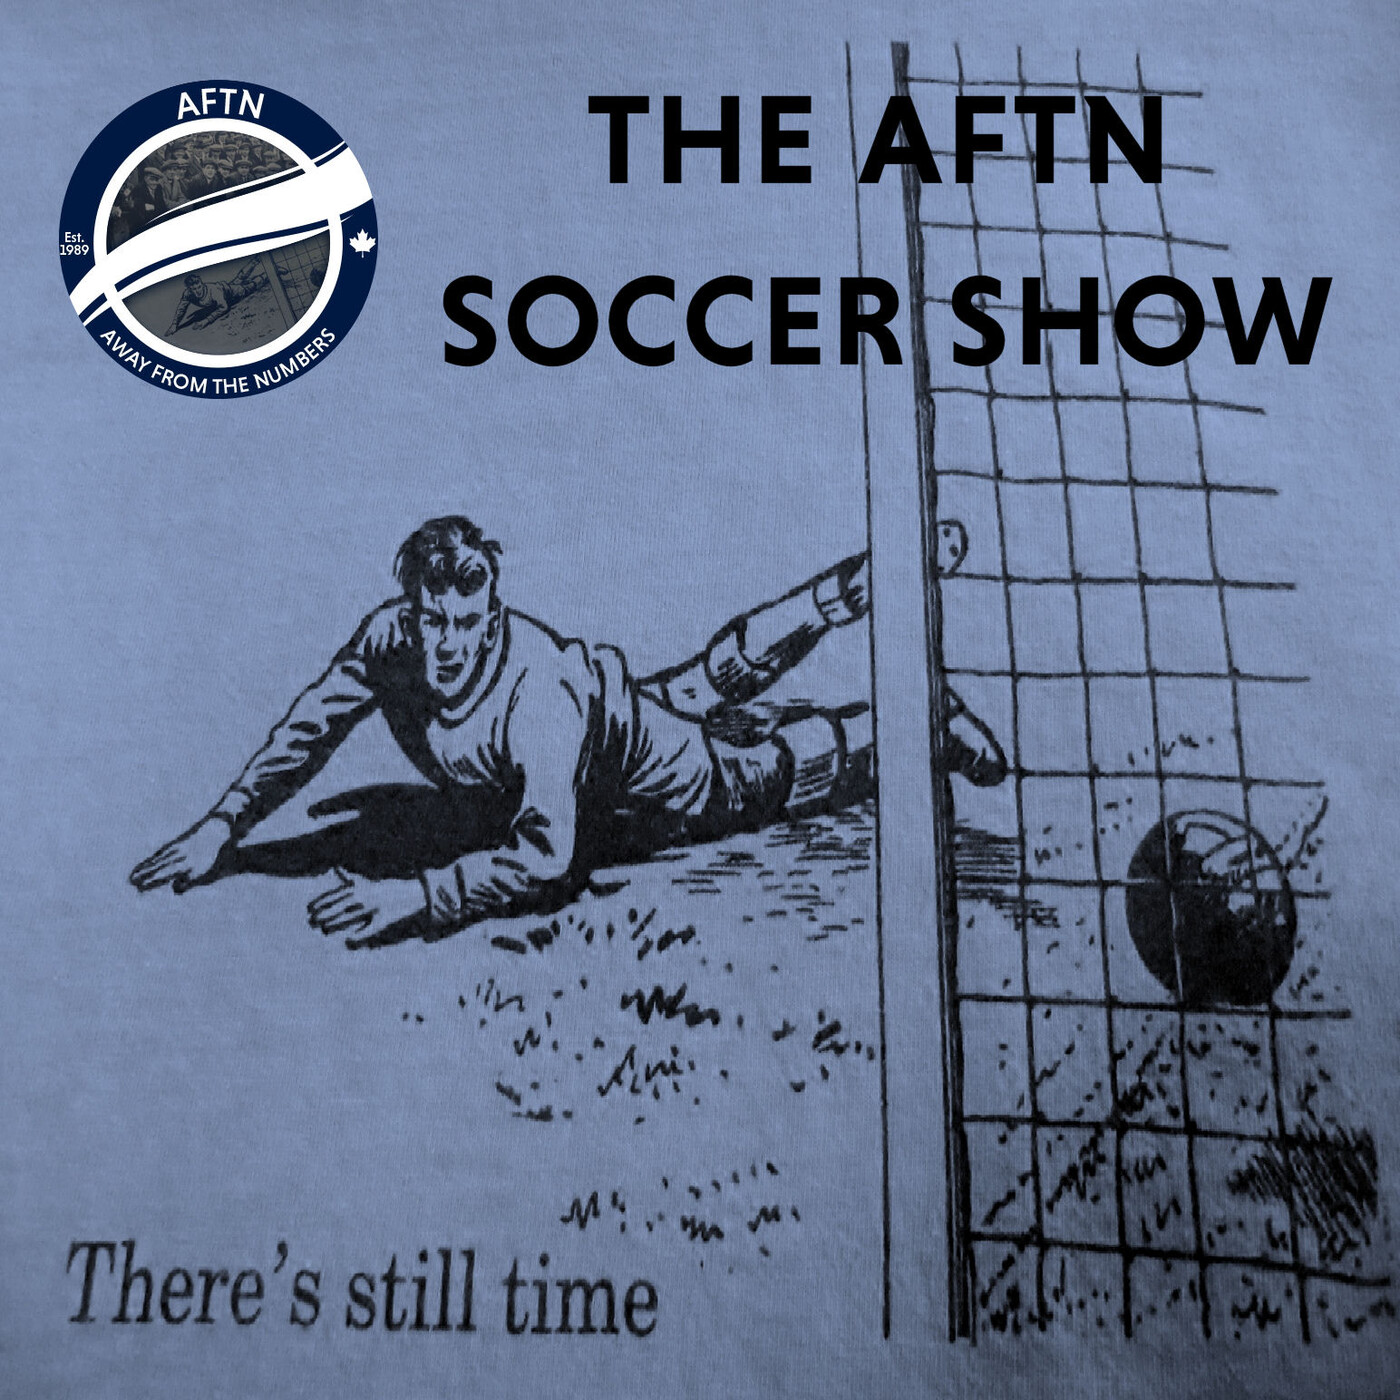 Episode 414 - The AFTN Soccer Show (Freakshow - Galaxy v Whitecaps, the MLS run-in, Supporters Shield controversy)